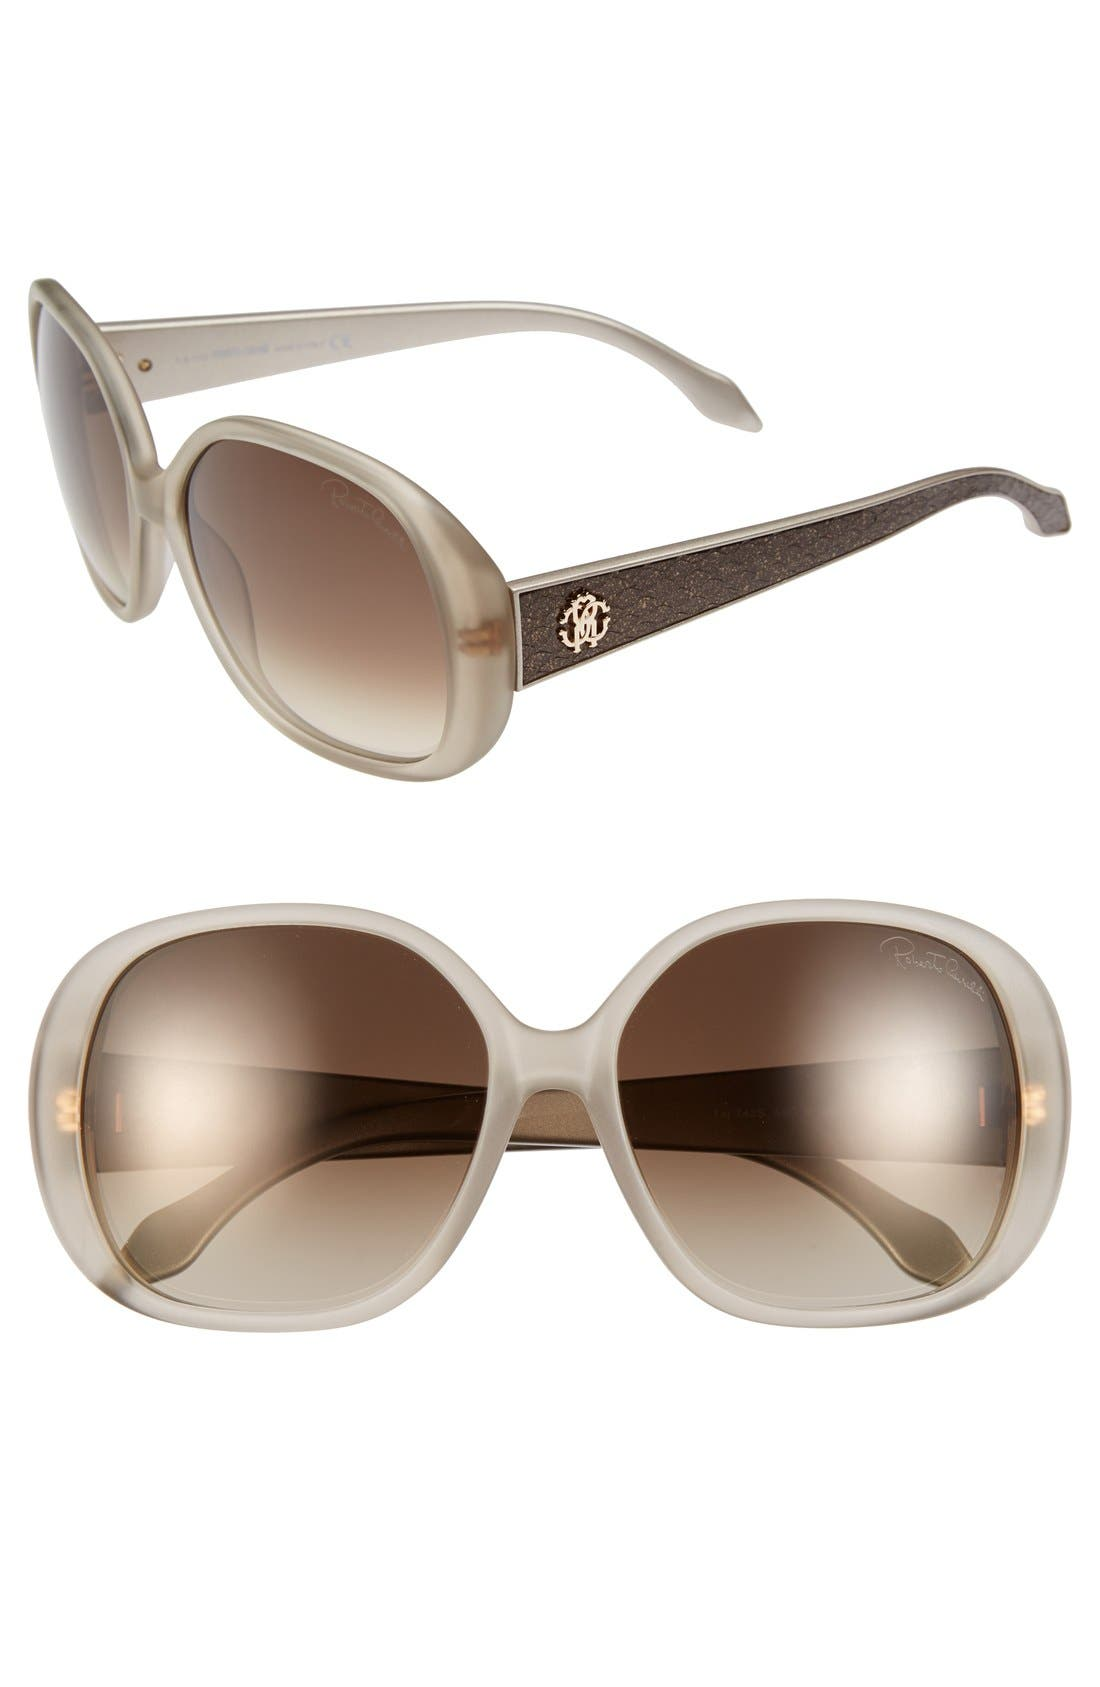 Main Image - Roberto Cavalli 'Taj' 60mm Sunglasses